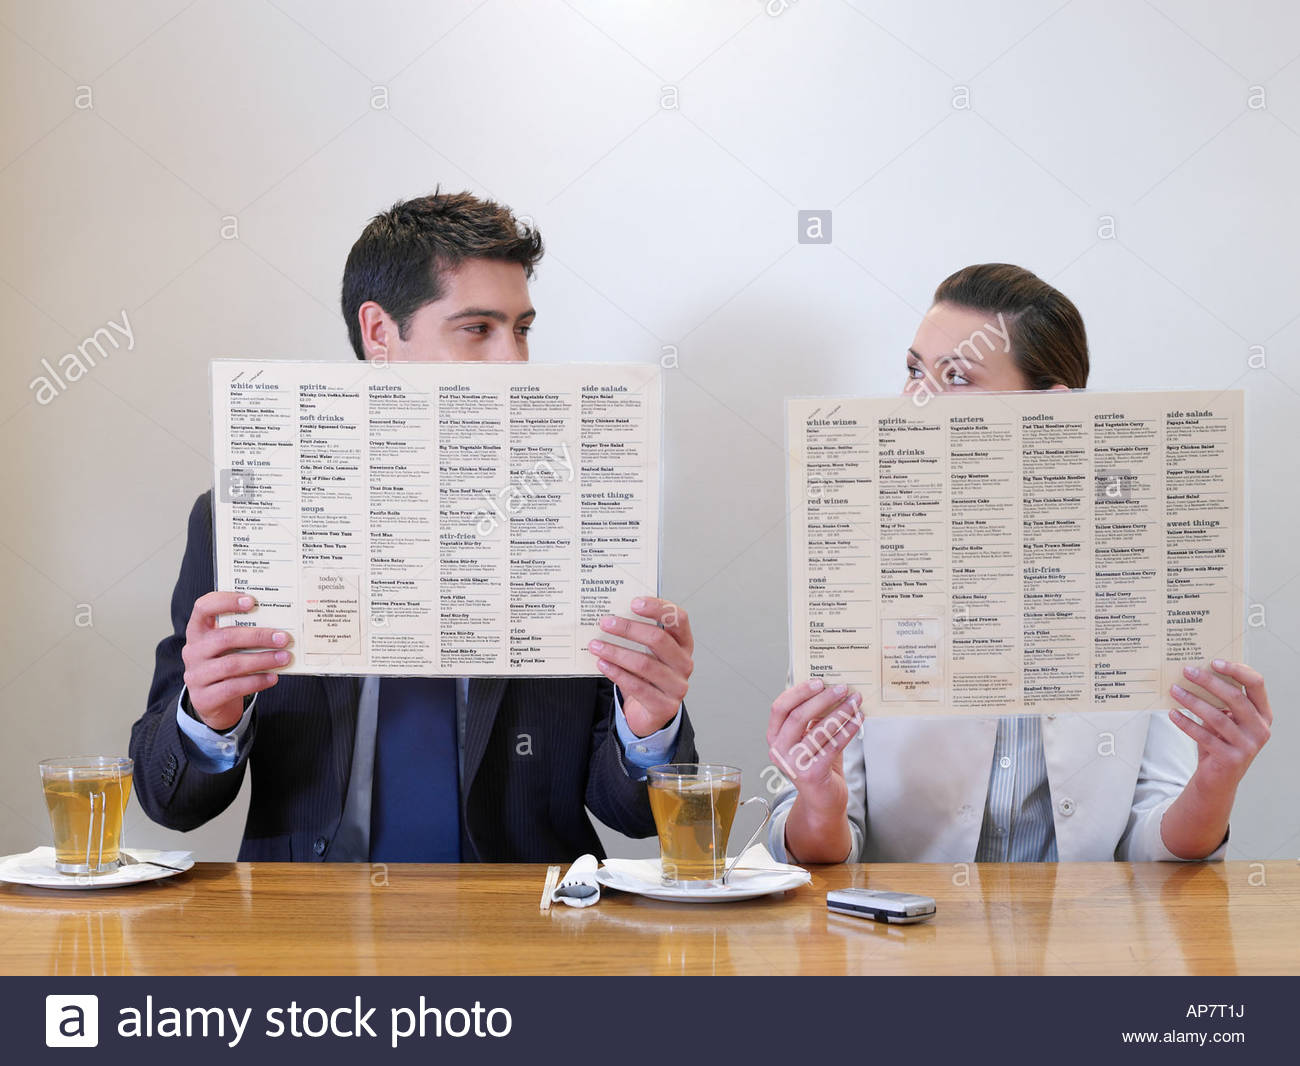 Man and woman with menus - Stock Image